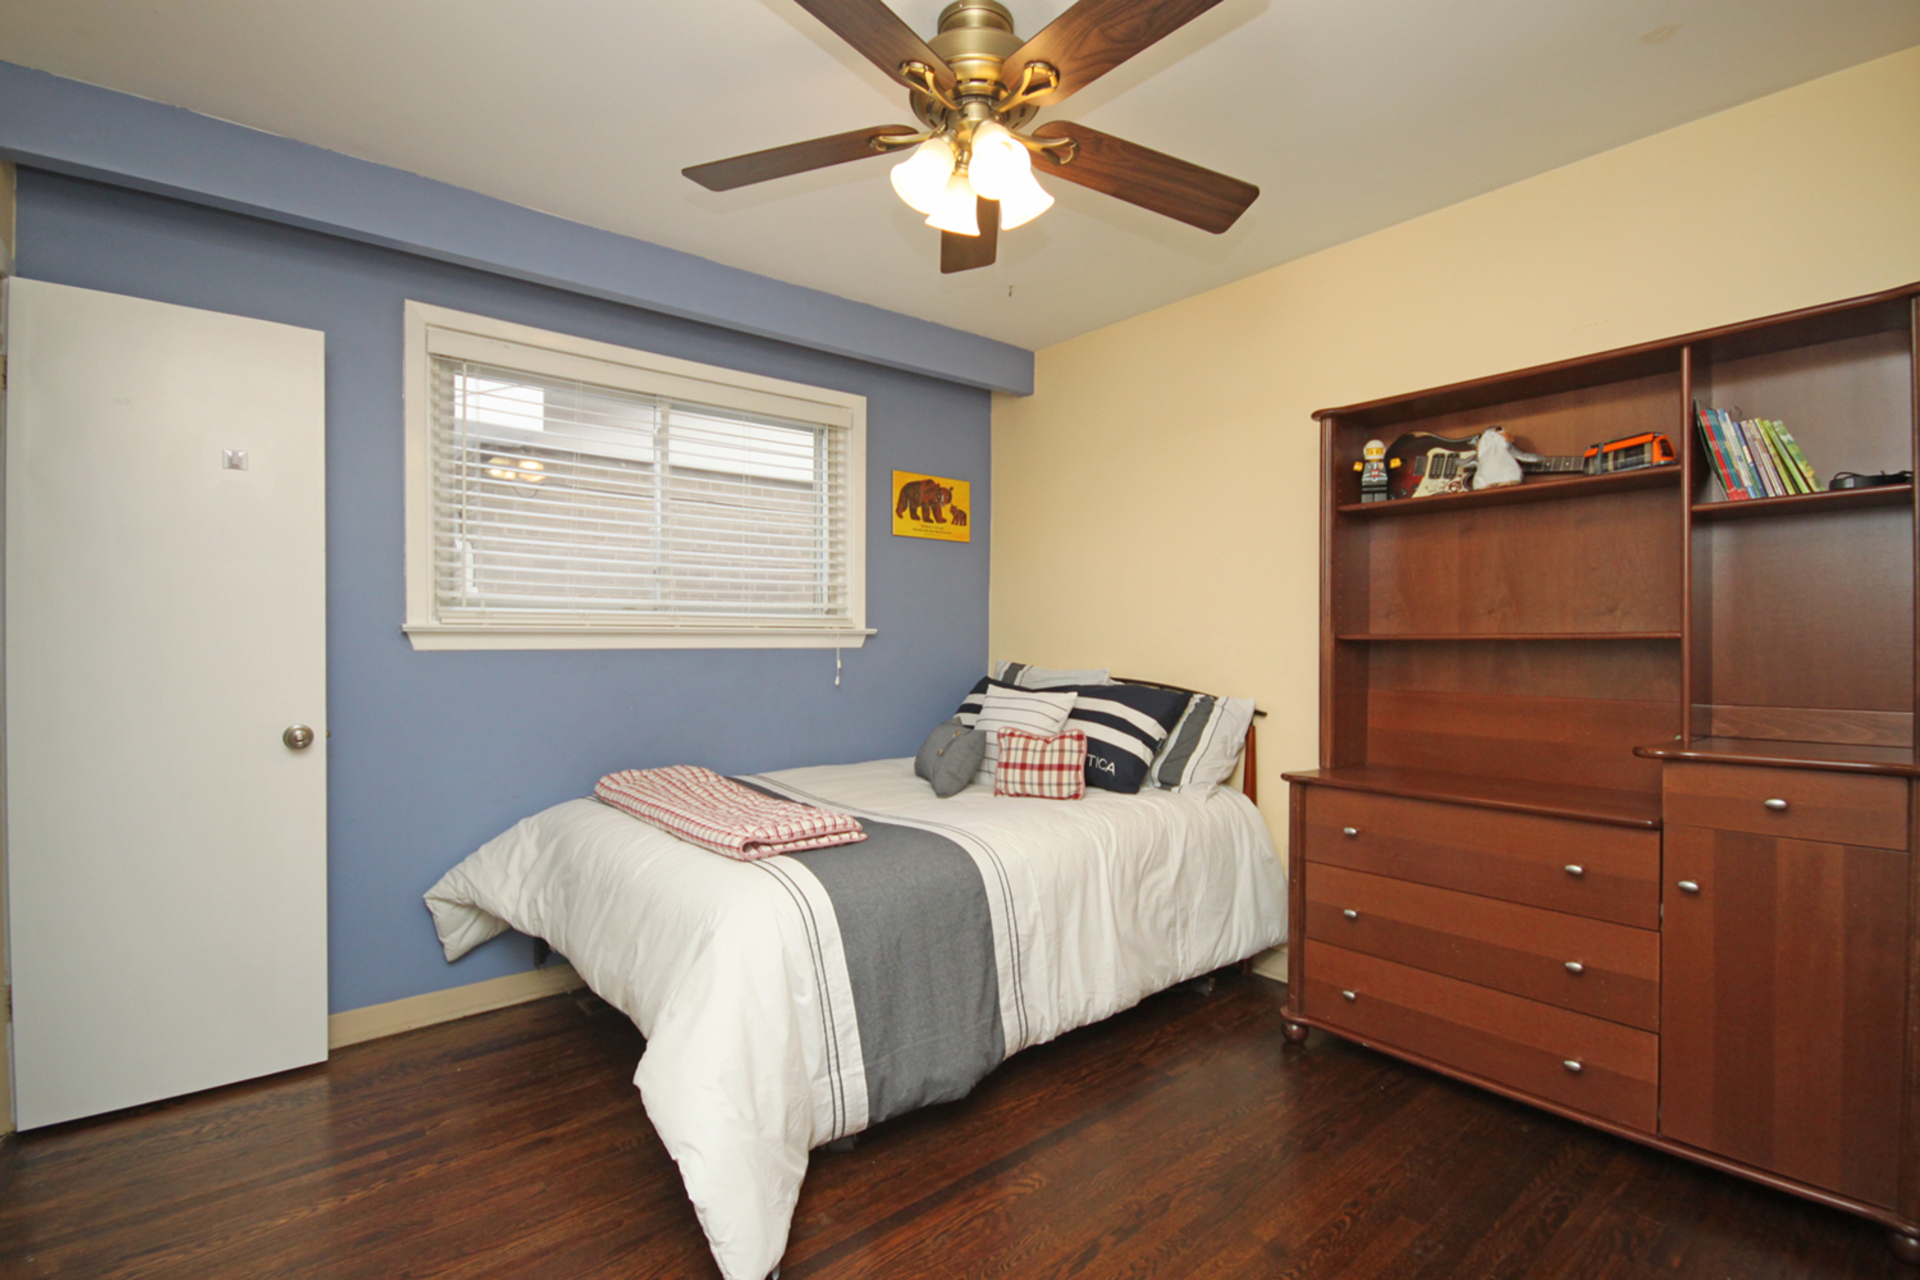 Bedroom at 53 Dukinfield Crescent, Parkwoods-Donalda, Toronto